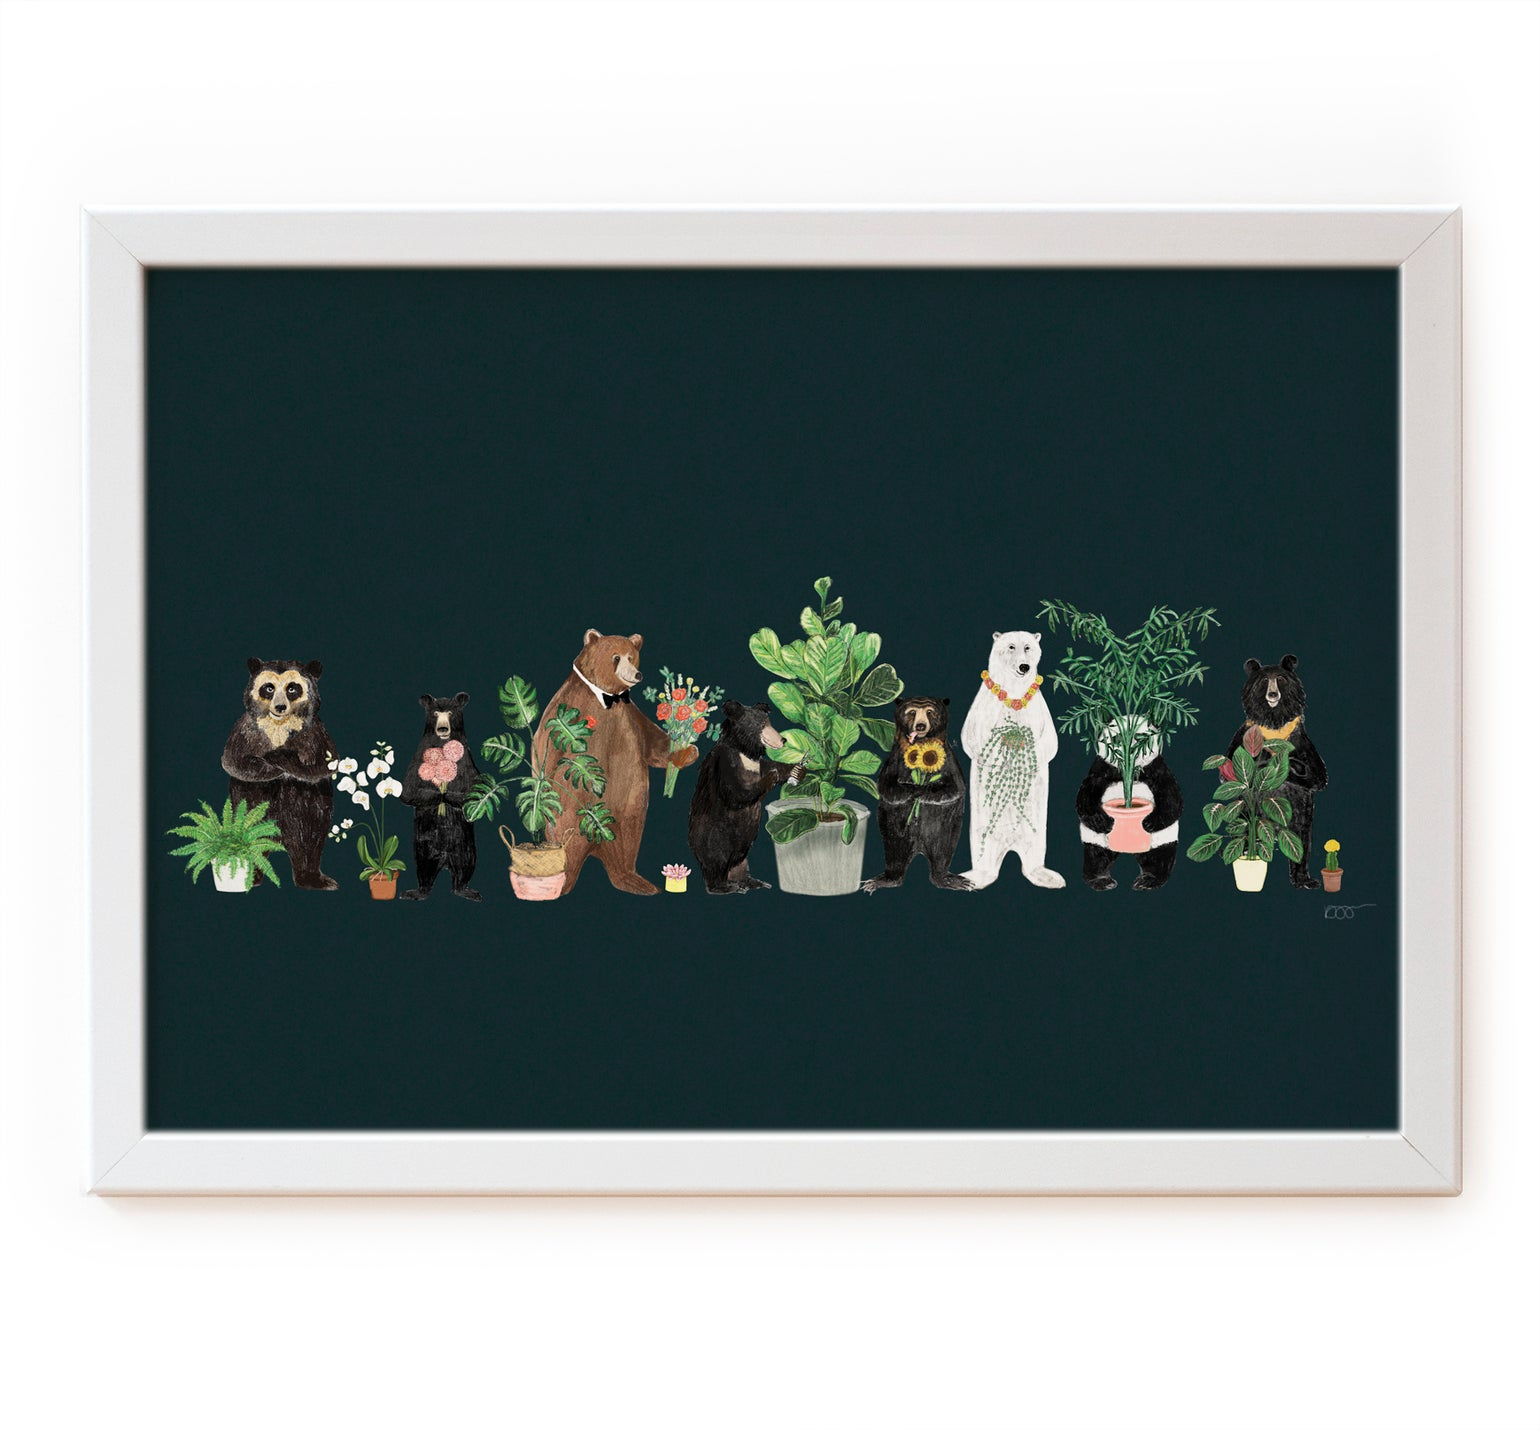 Image of Bears and Plants on Green